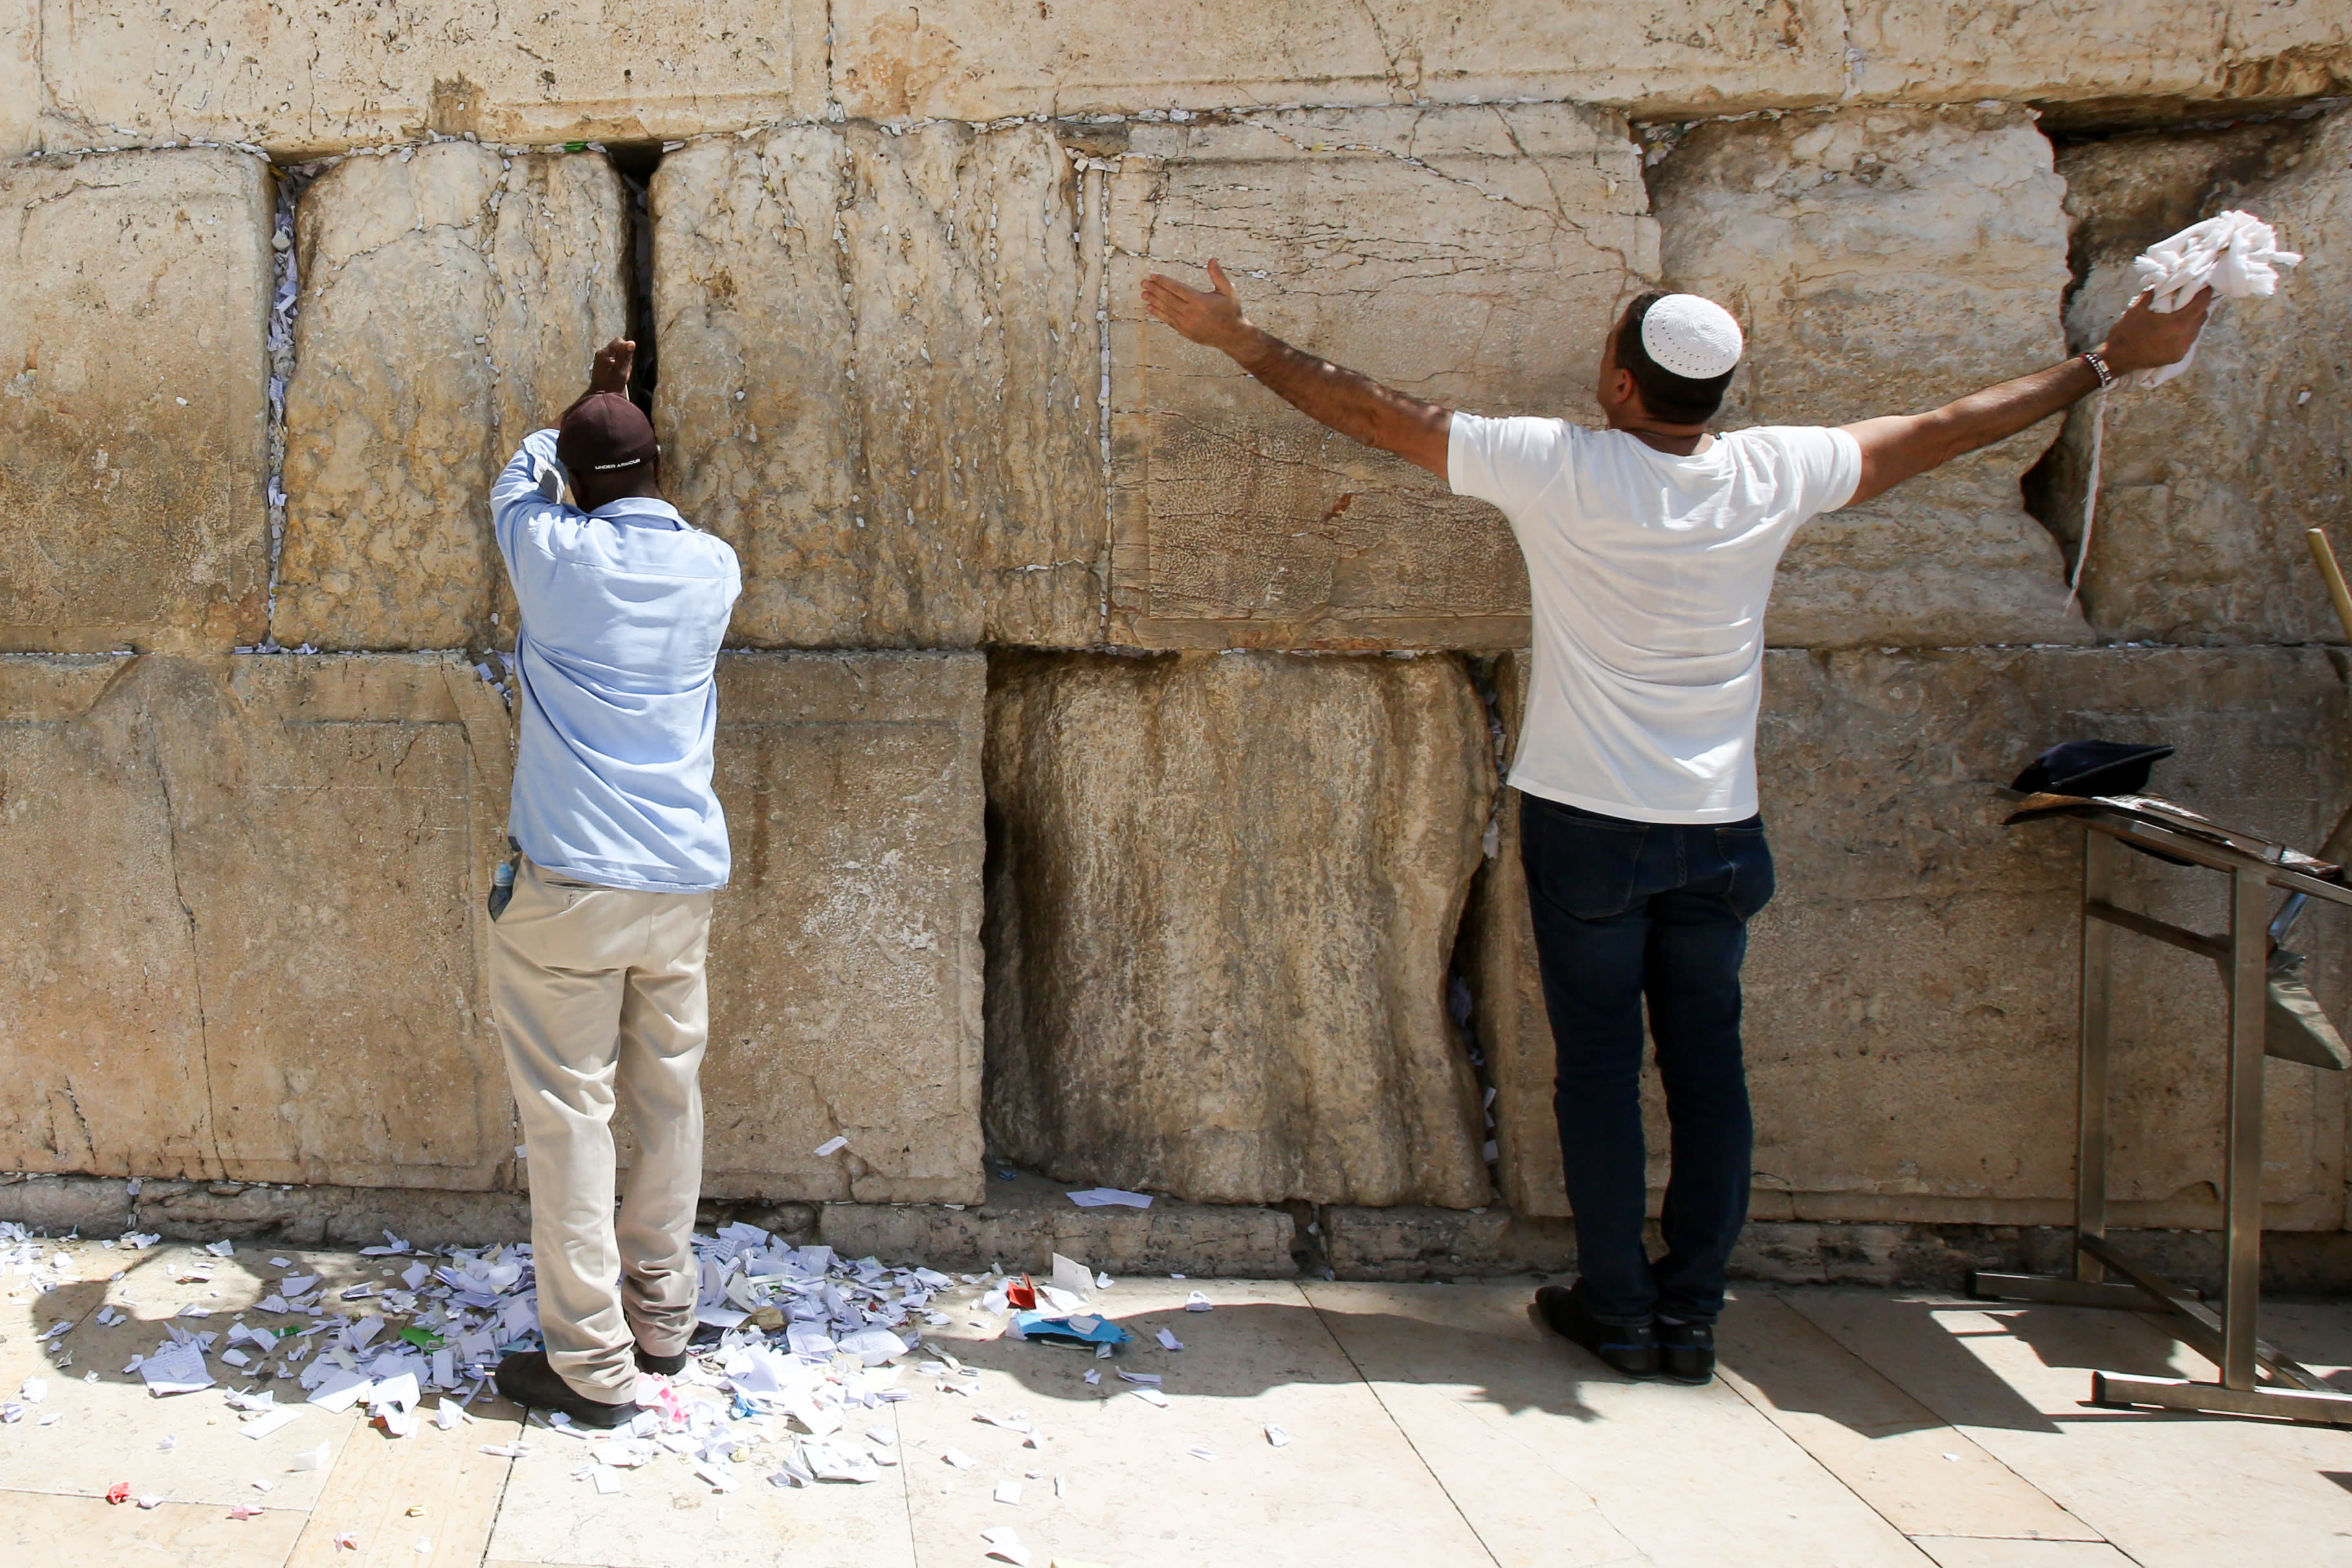 Wall Photo in pictures: prayers and renewal at the western wall before rosh